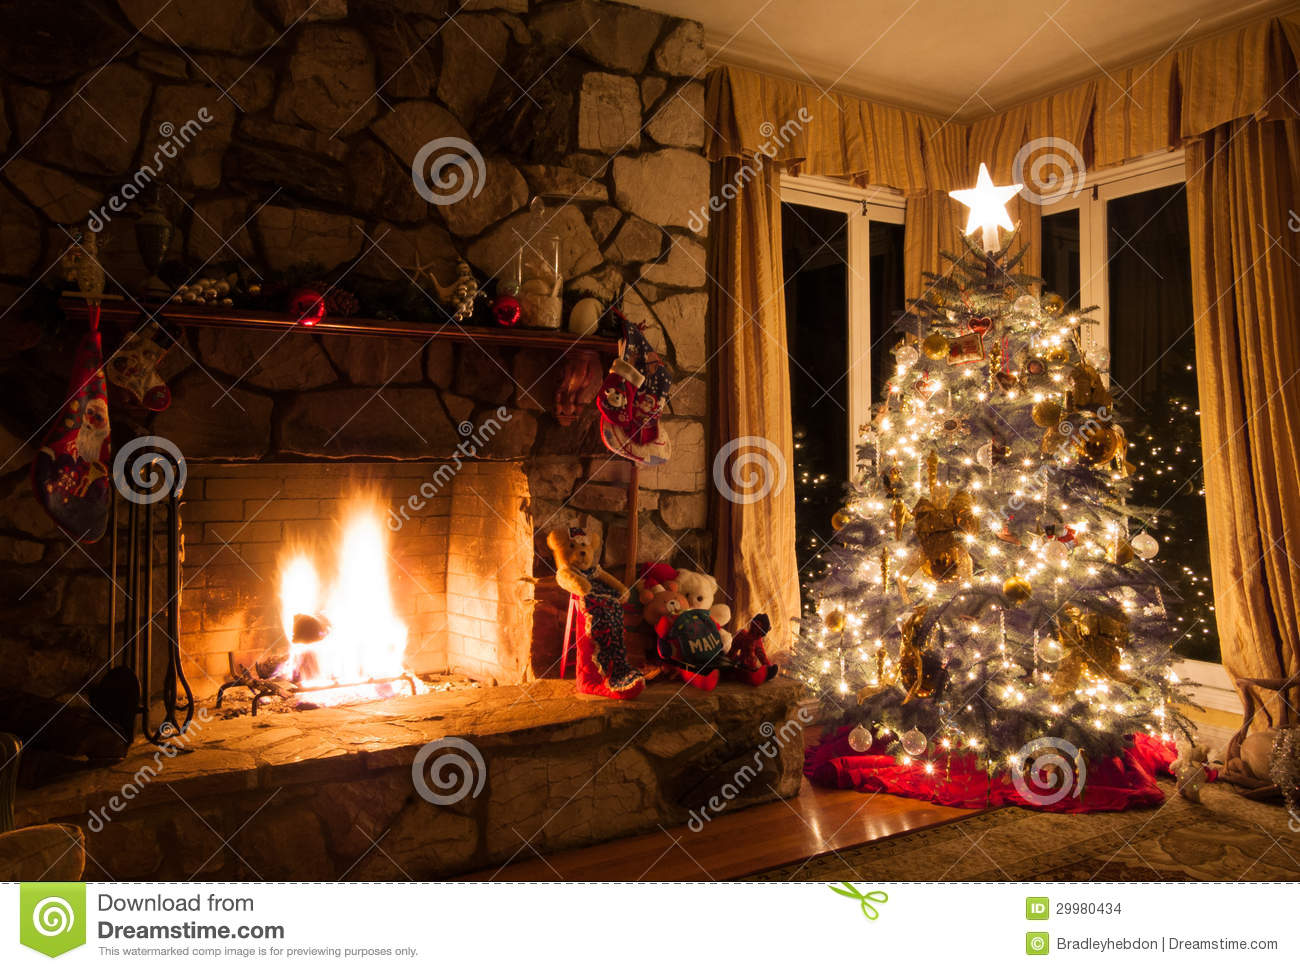 Christmas Tree And Rustic Fireplace In A Cozy Home Stock